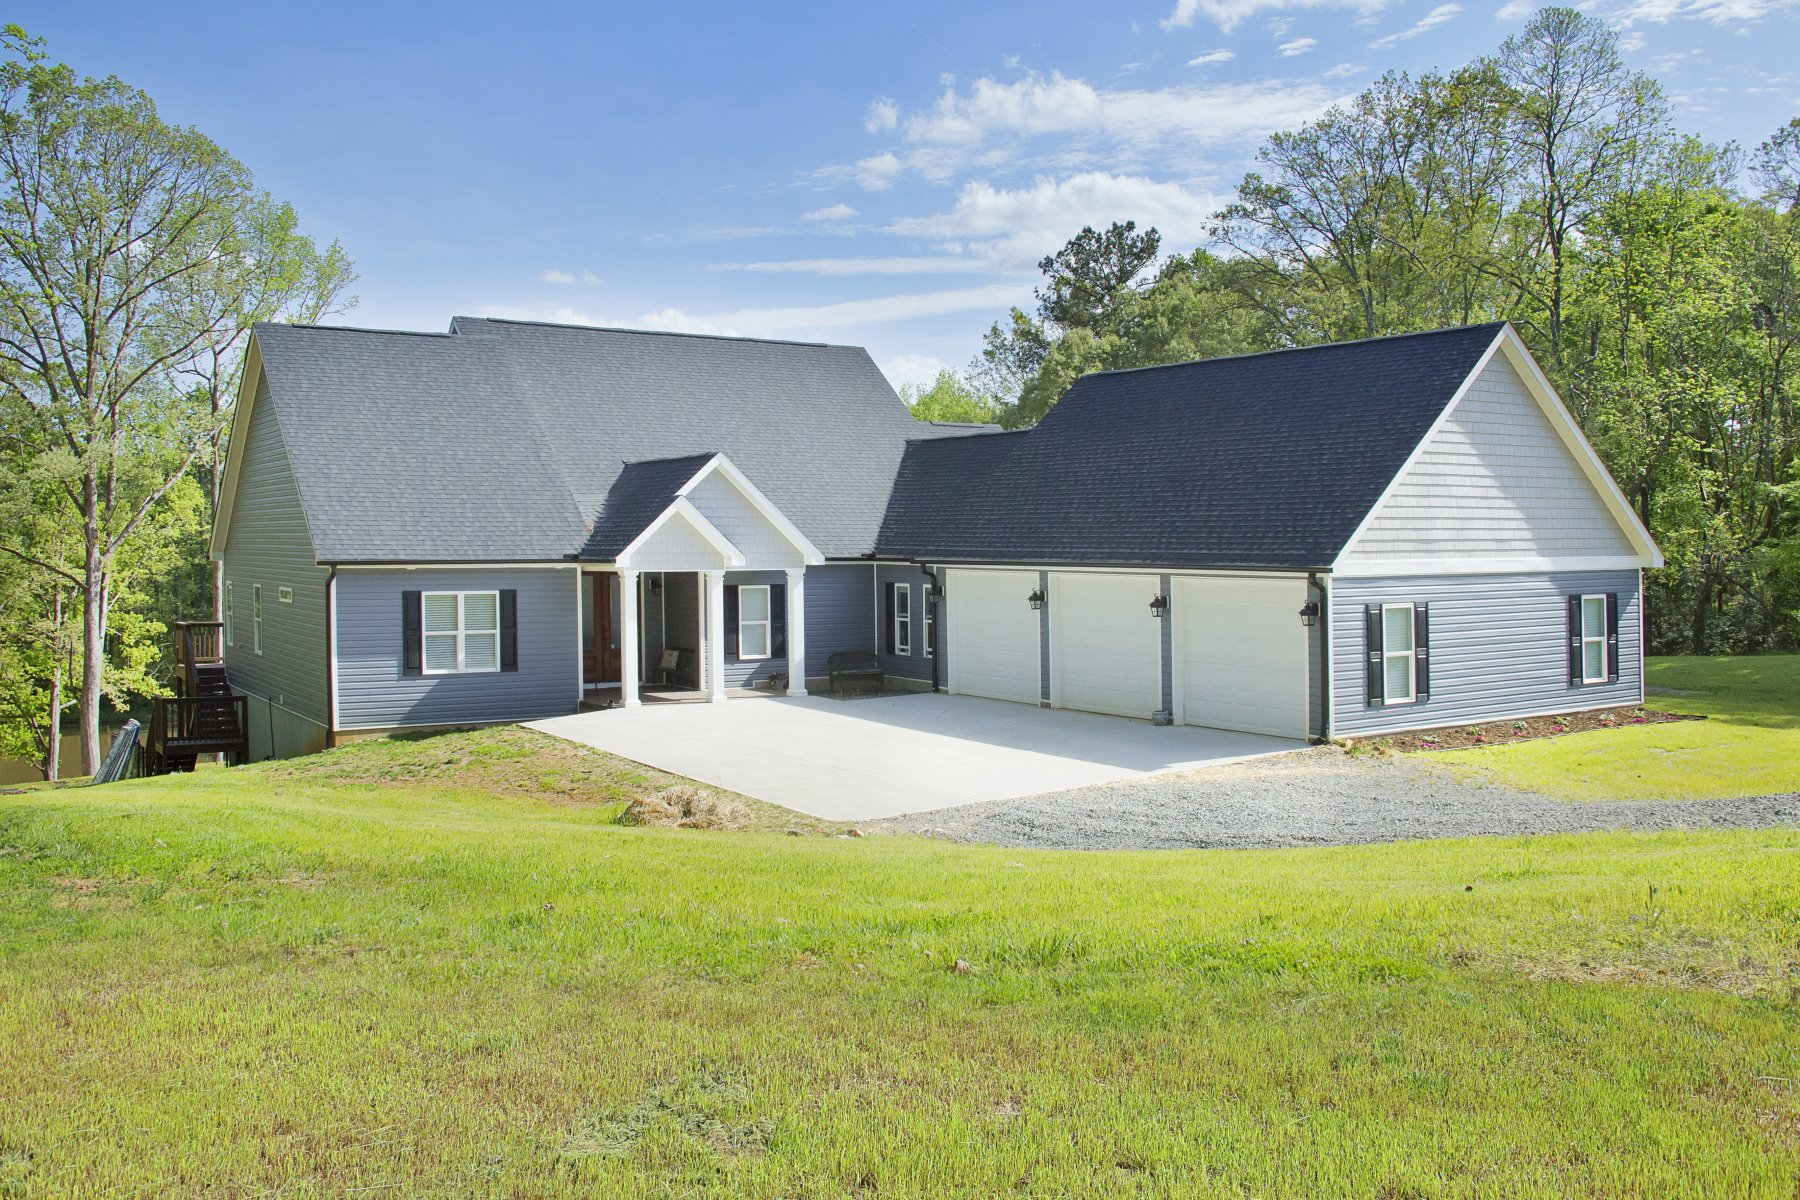 Single Family Homes for Active at 264 Revmont Drive Pittsboro, North Carolina 27312 United States